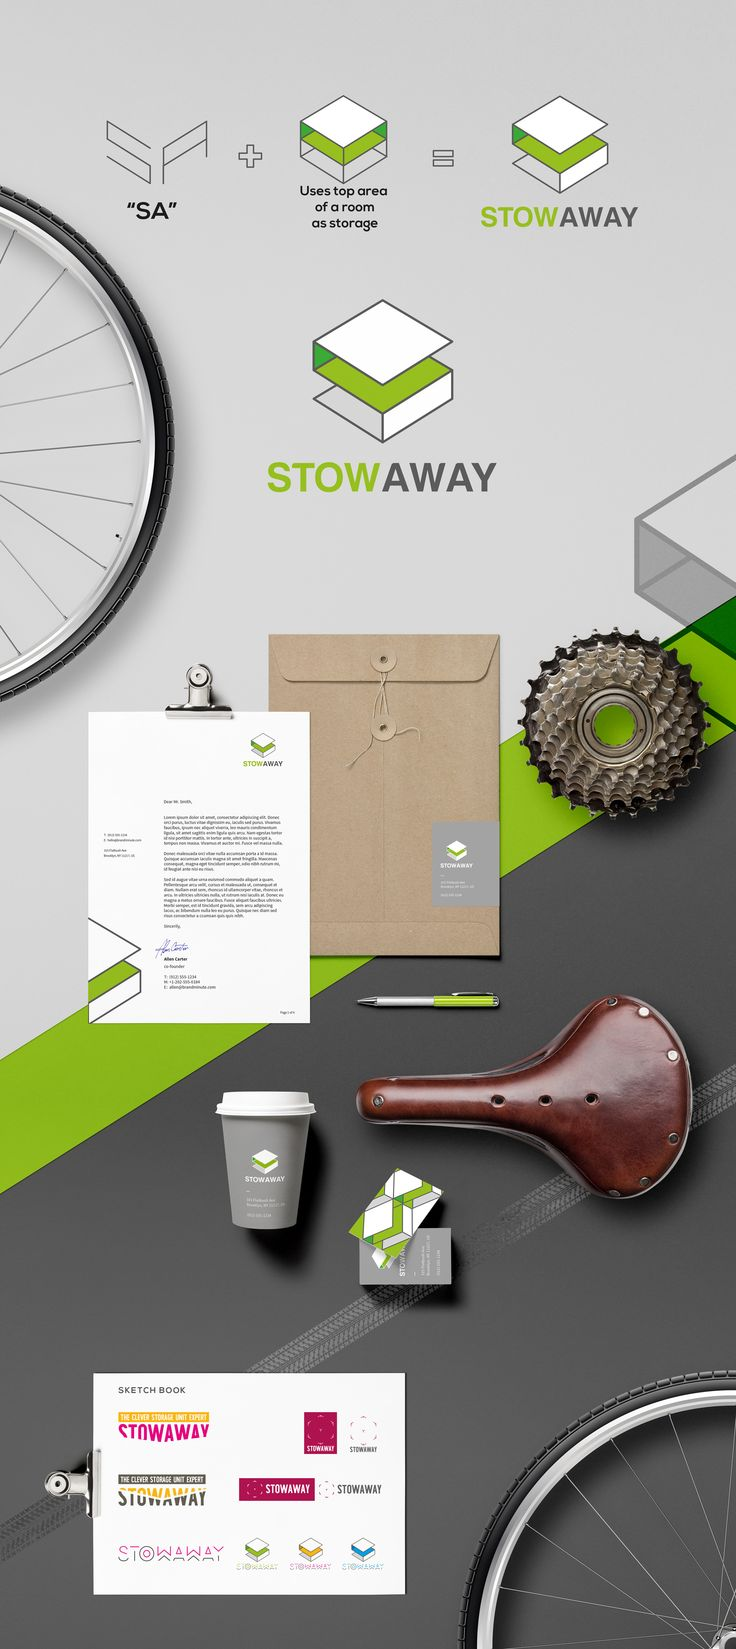 """CLIENT StowAway BRIEF Stowaway is a simple, safe, secure & minimalist solution to storing your bike in your home. They needed branding to reflect this. SOLUTION We kept with a minimalist solution to this, combining the """"S"""" and the """"A"""" motif with a graphic highlighting the top half of a room. The colors used are young, gender neutral and vibrant. RESULT Stowaway got a logo that reflects their simple, secure & minimalist ideals."""